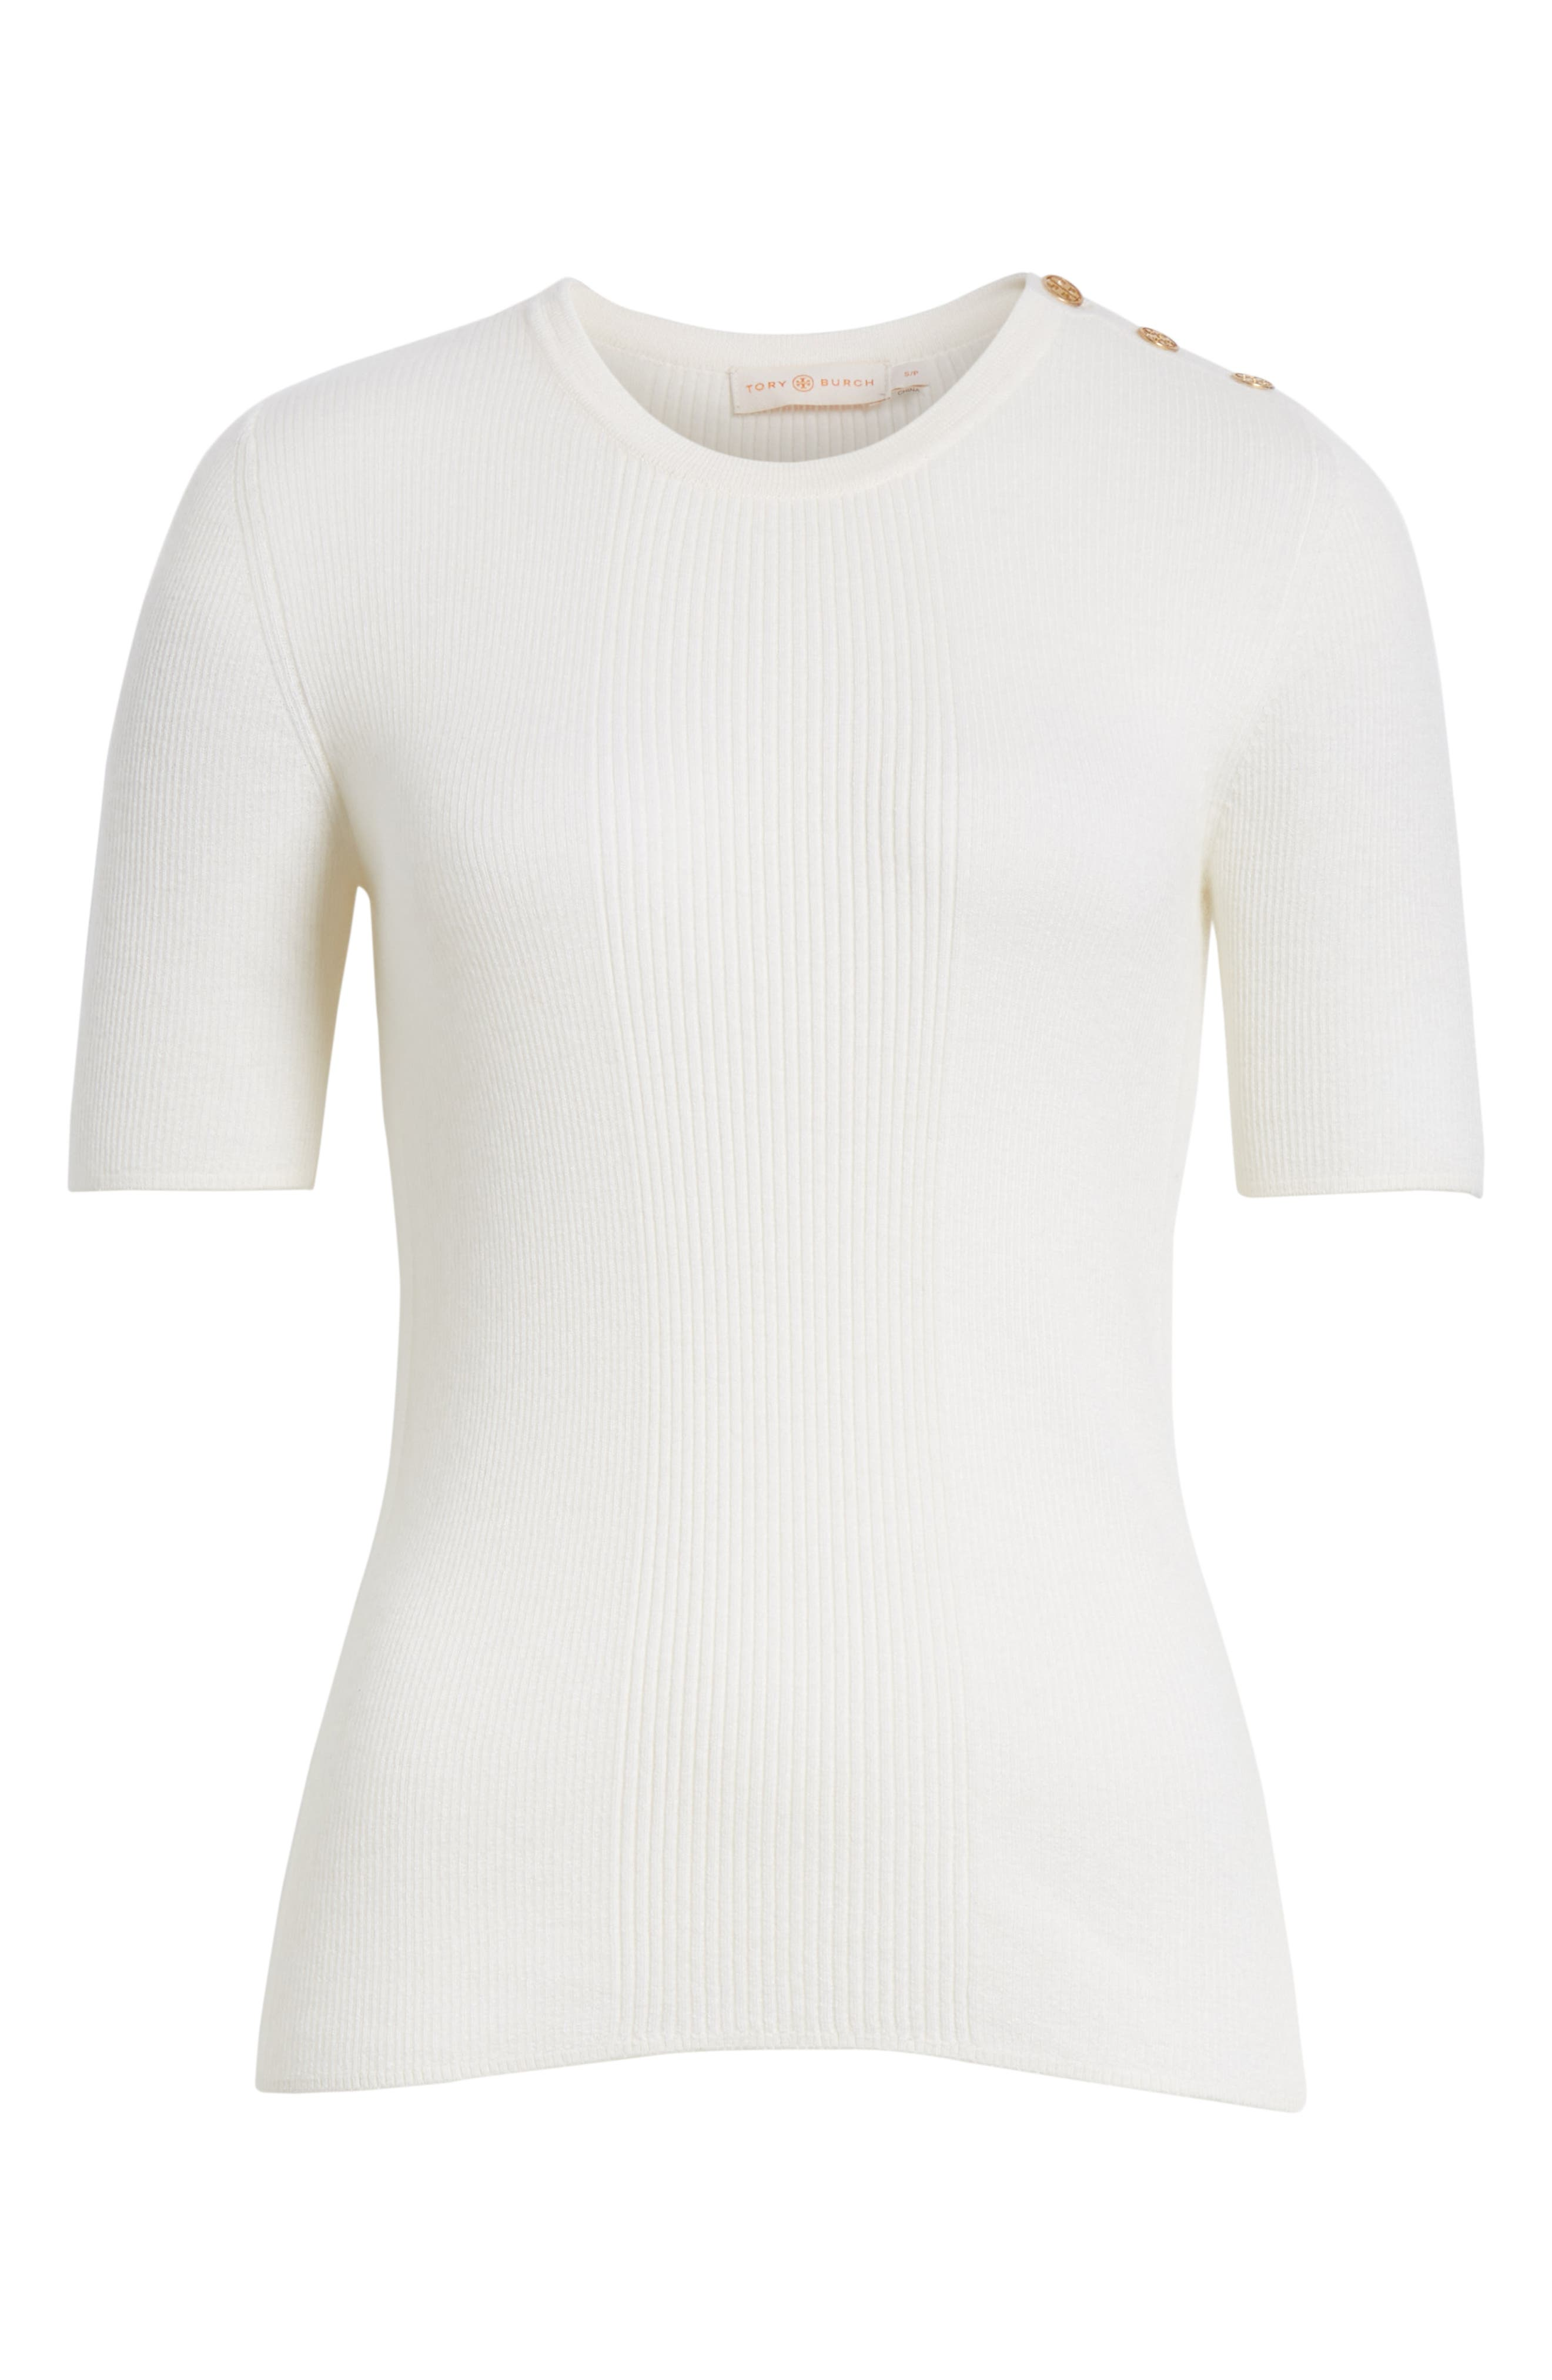 Taylor Ribbed Cashmere Sweater,                             Alternate thumbnail 6, color,                             New Ivory